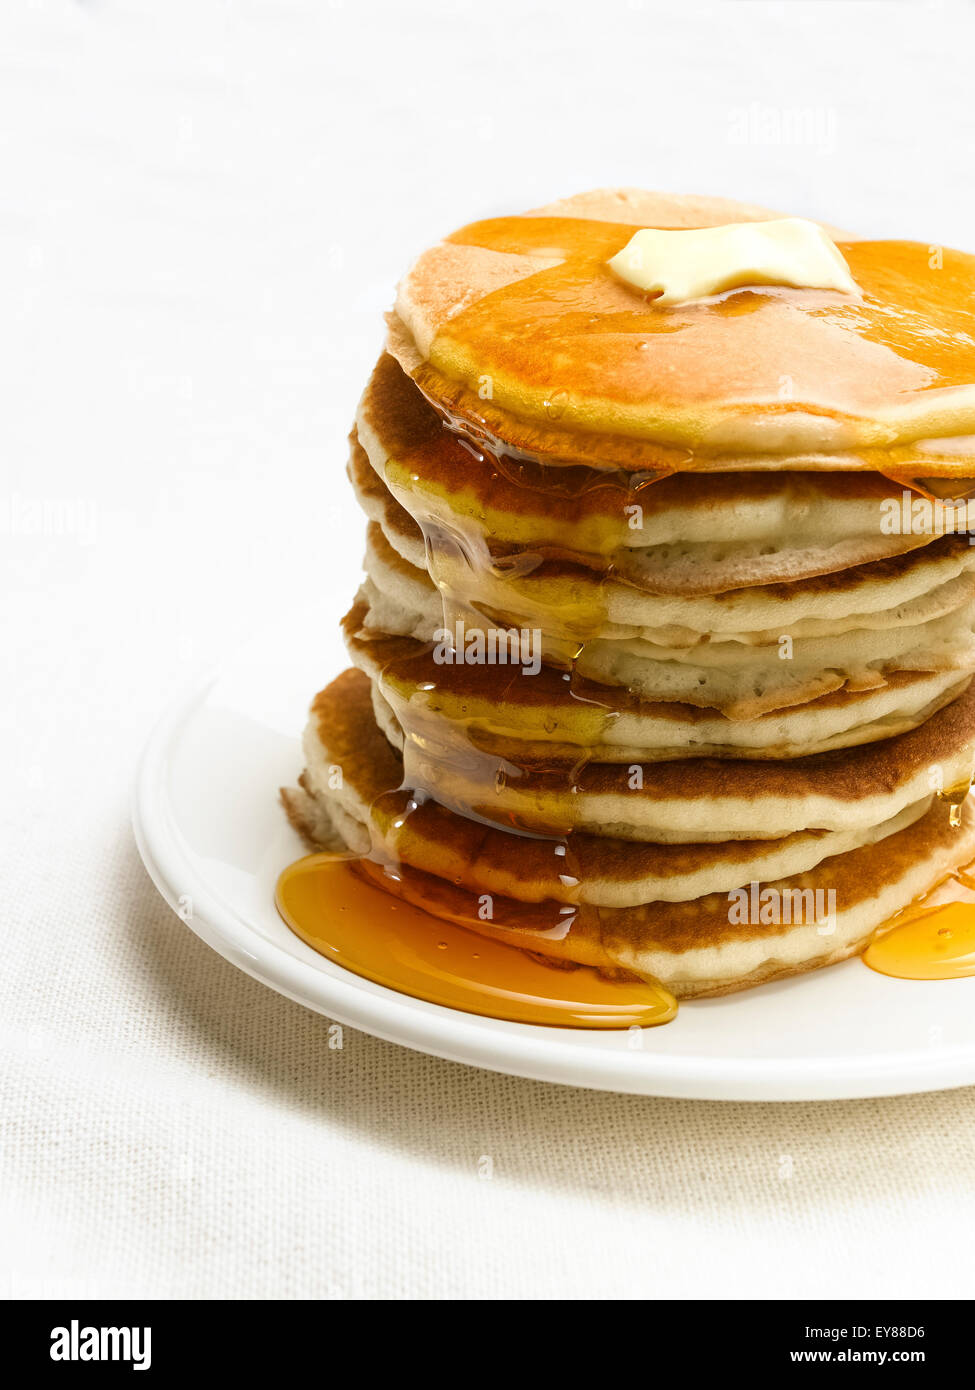 Table with Pancakes in a stack with syrup and butter - Stock Image